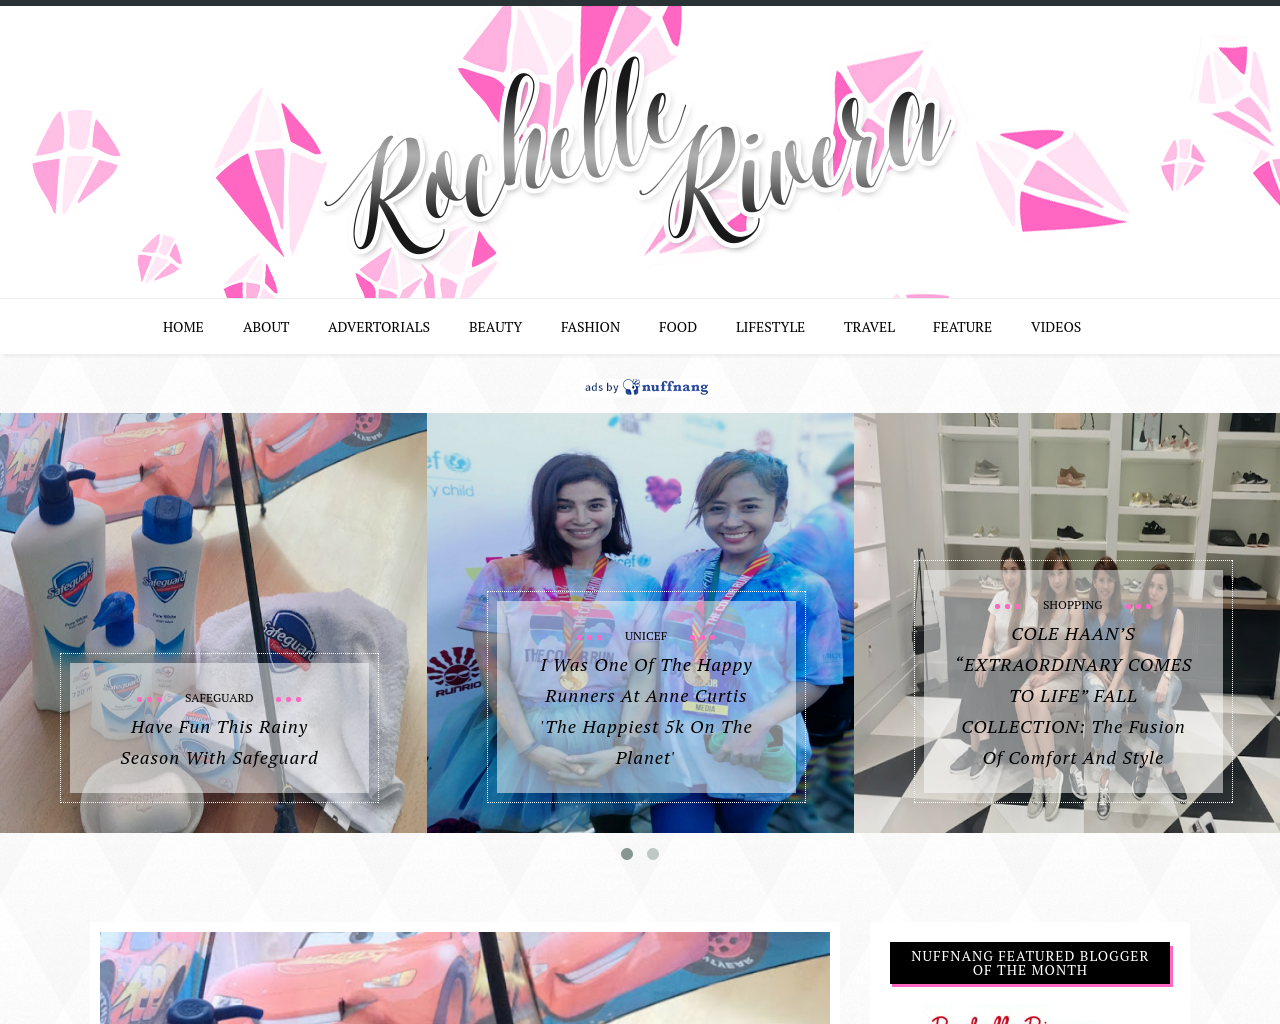 Rochelle-Rivera-Advertising-Reviews-Pricing